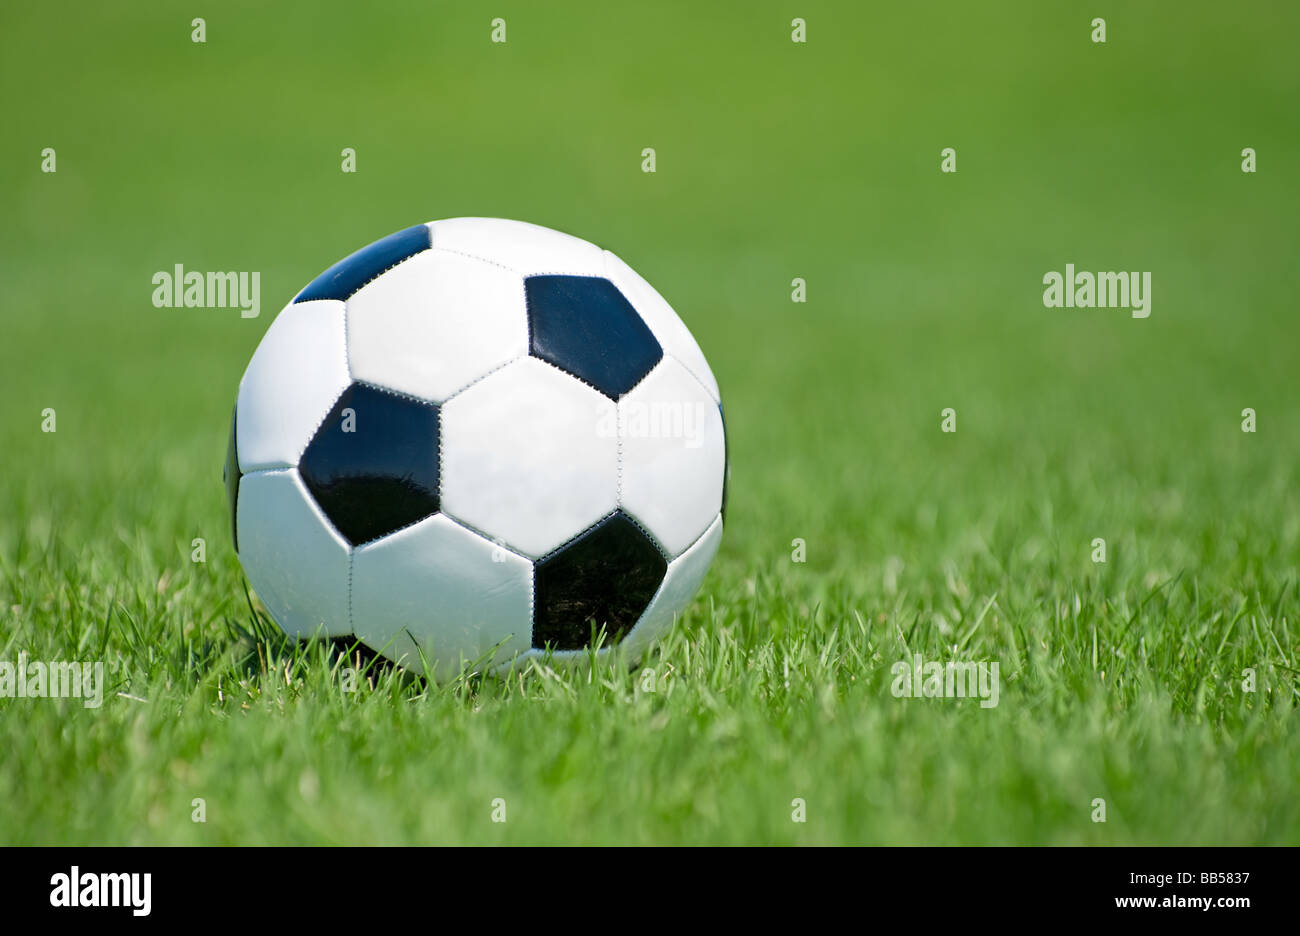 Soccer ball in the grass field - Stock Image